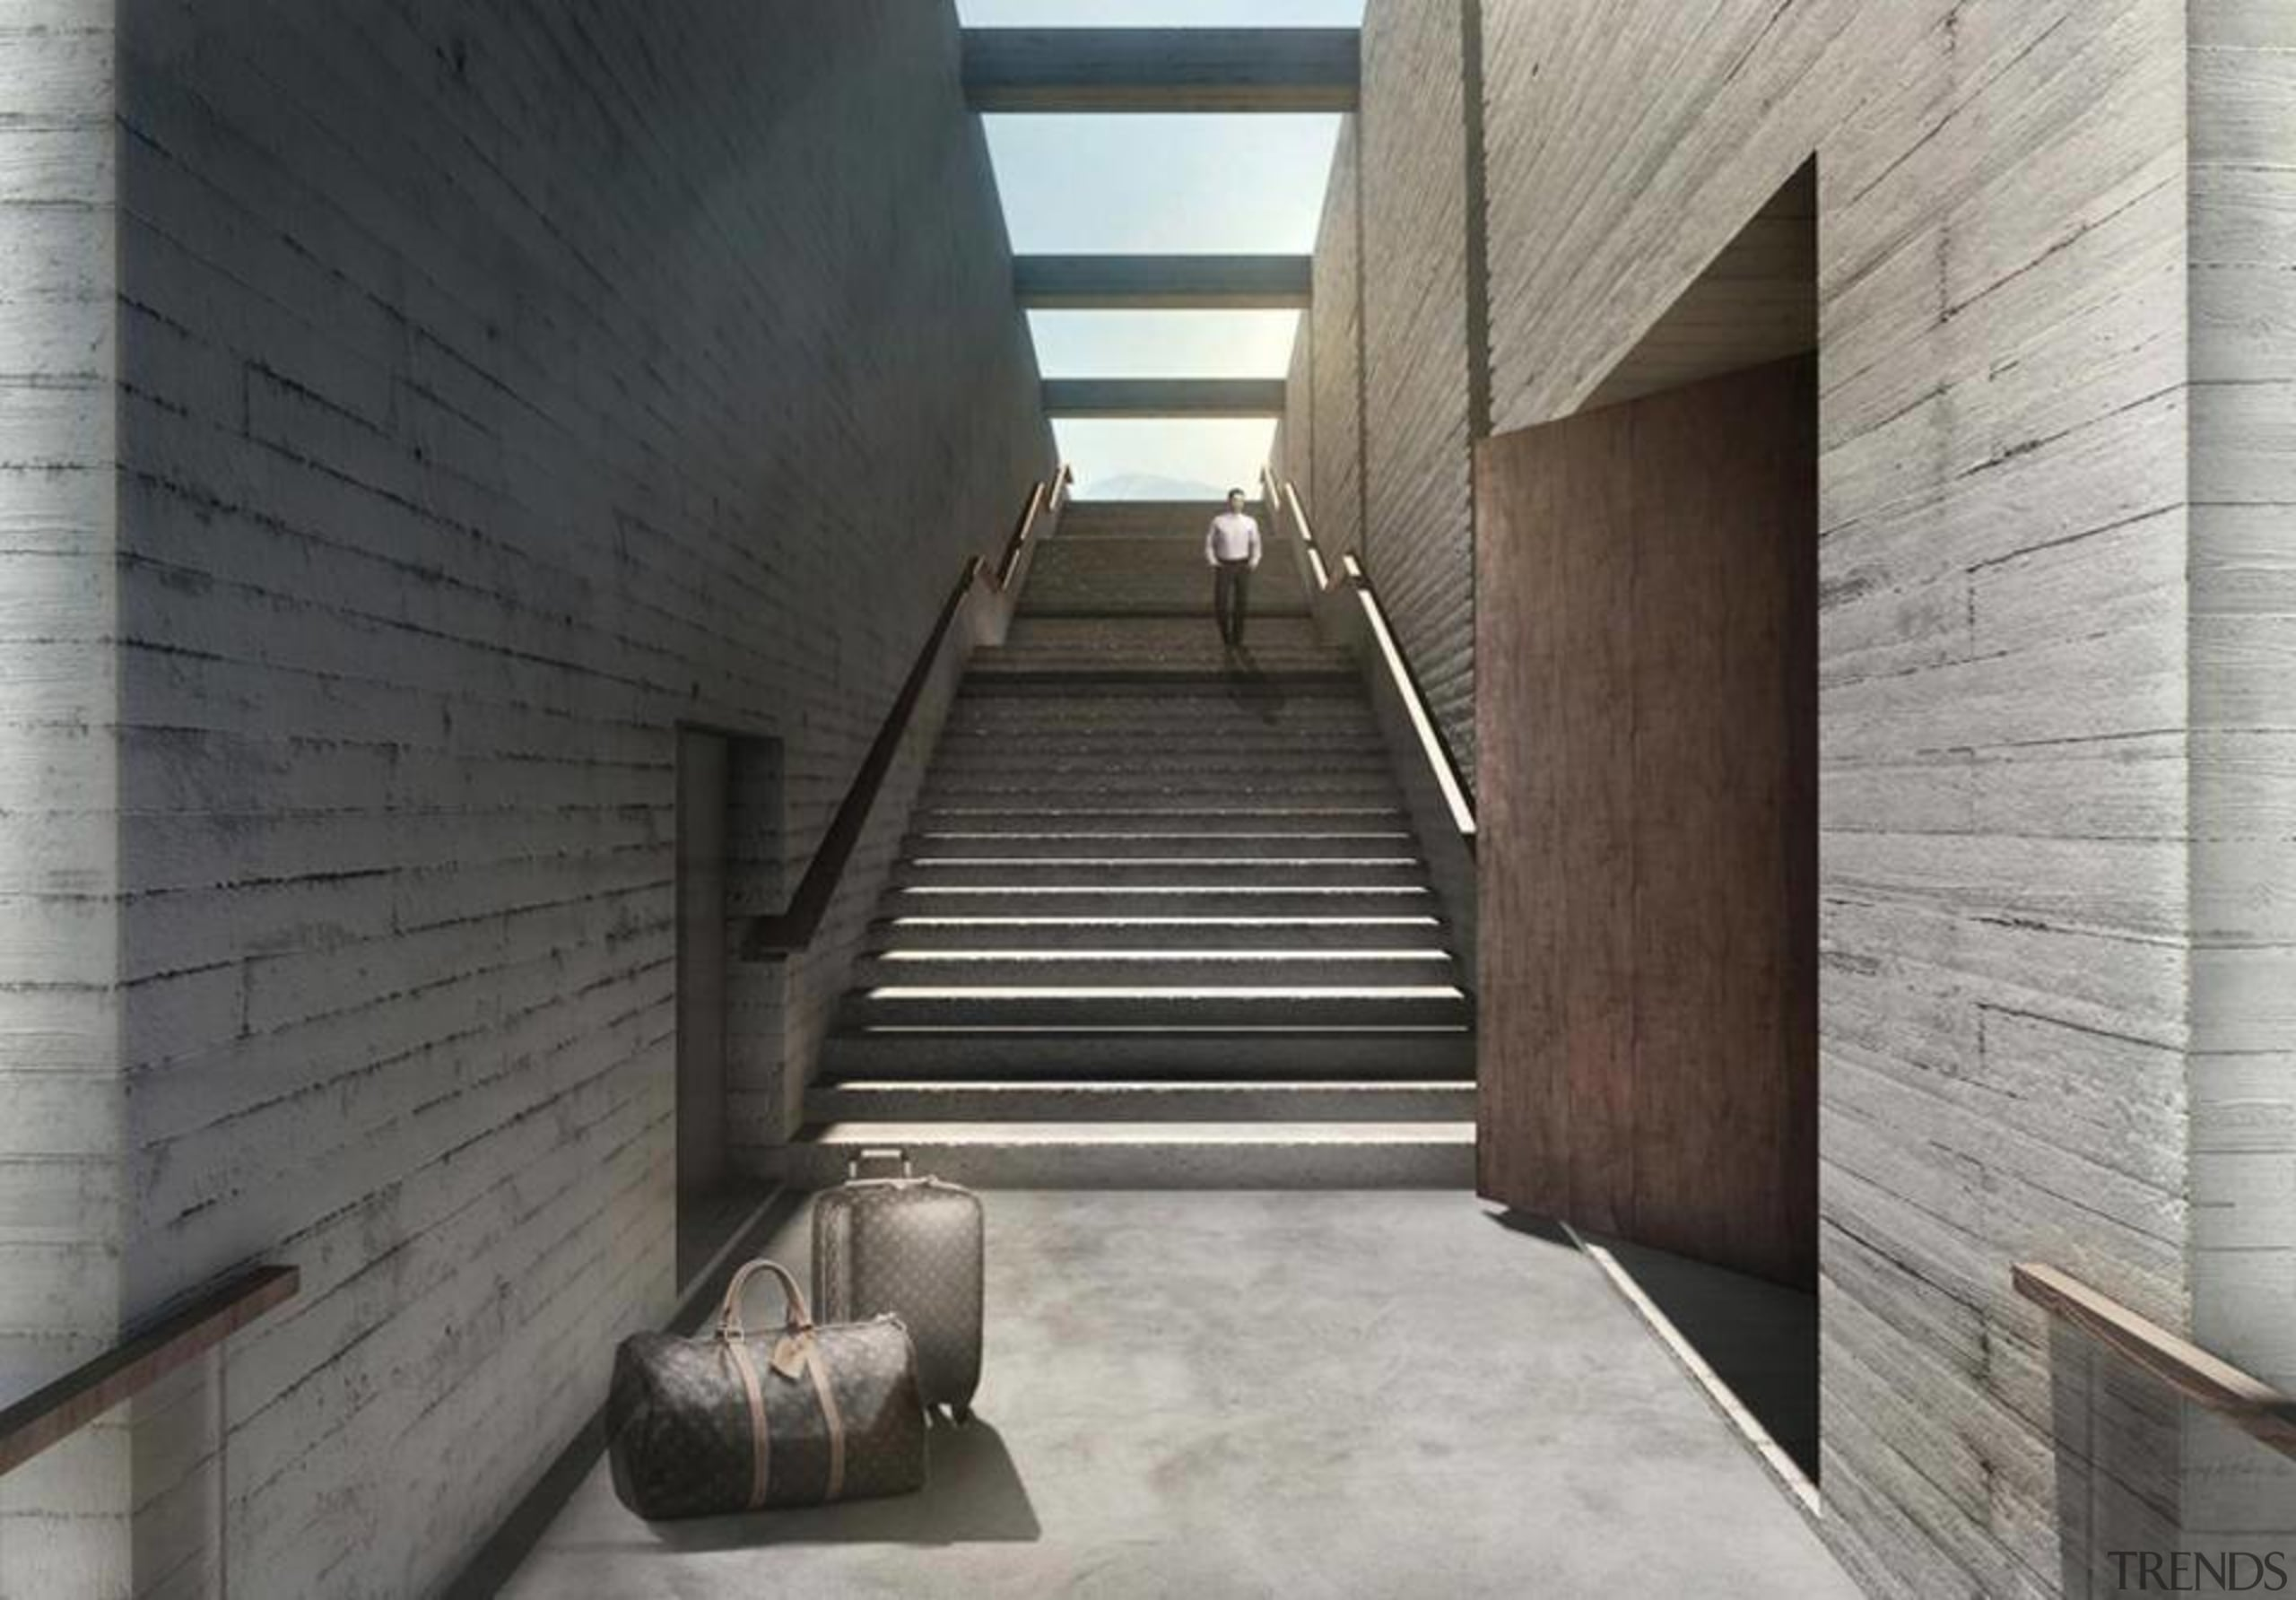 Casa Brutale: Images from LAAV architecture, daylighting, stairs, structure, gray, black